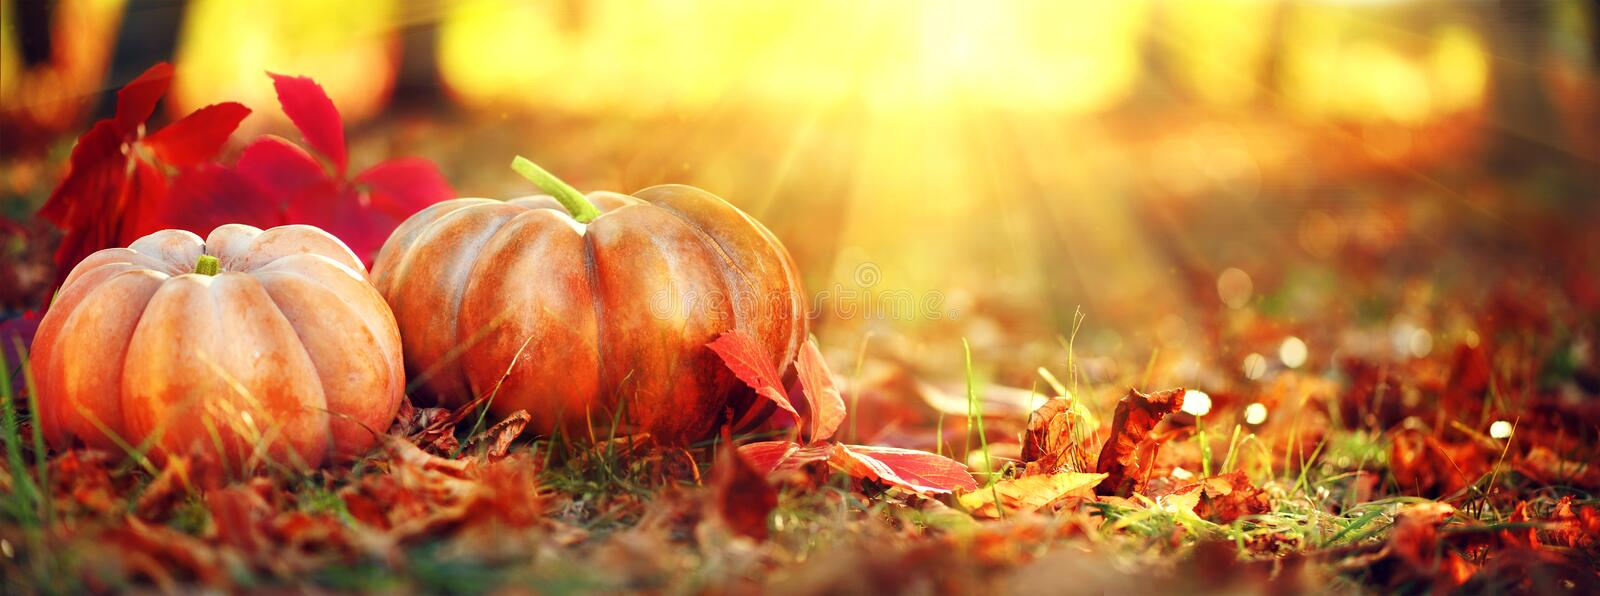 Autumn Halloween pumpkins. Orange pumpkins over nature background stock photo